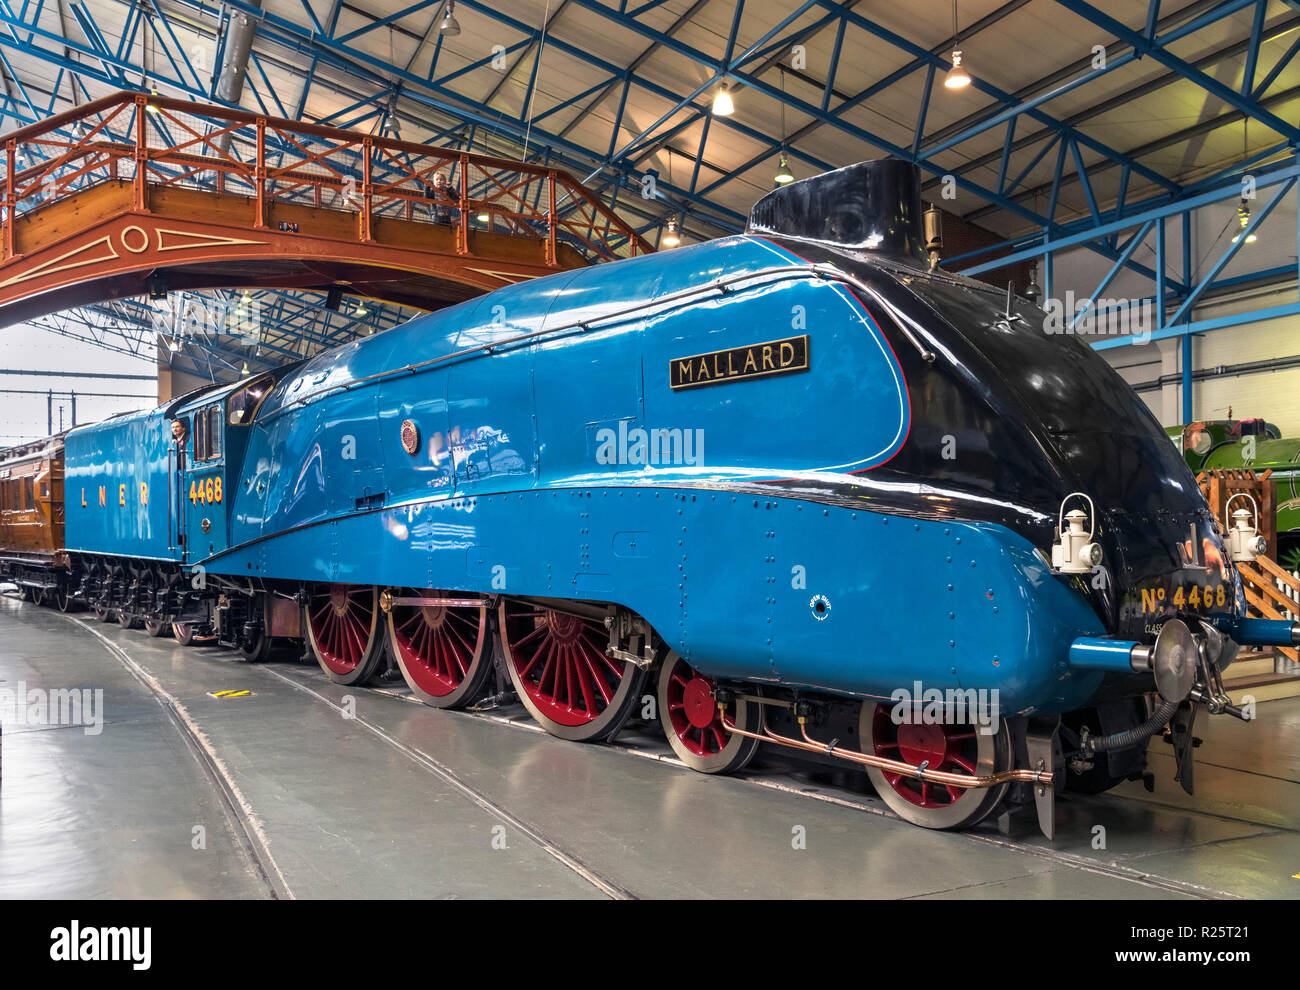 Mallard no 4468, the fastest ever steam train, in the Great Hall, National Railway Museum, York, England, UK. - Stock Image